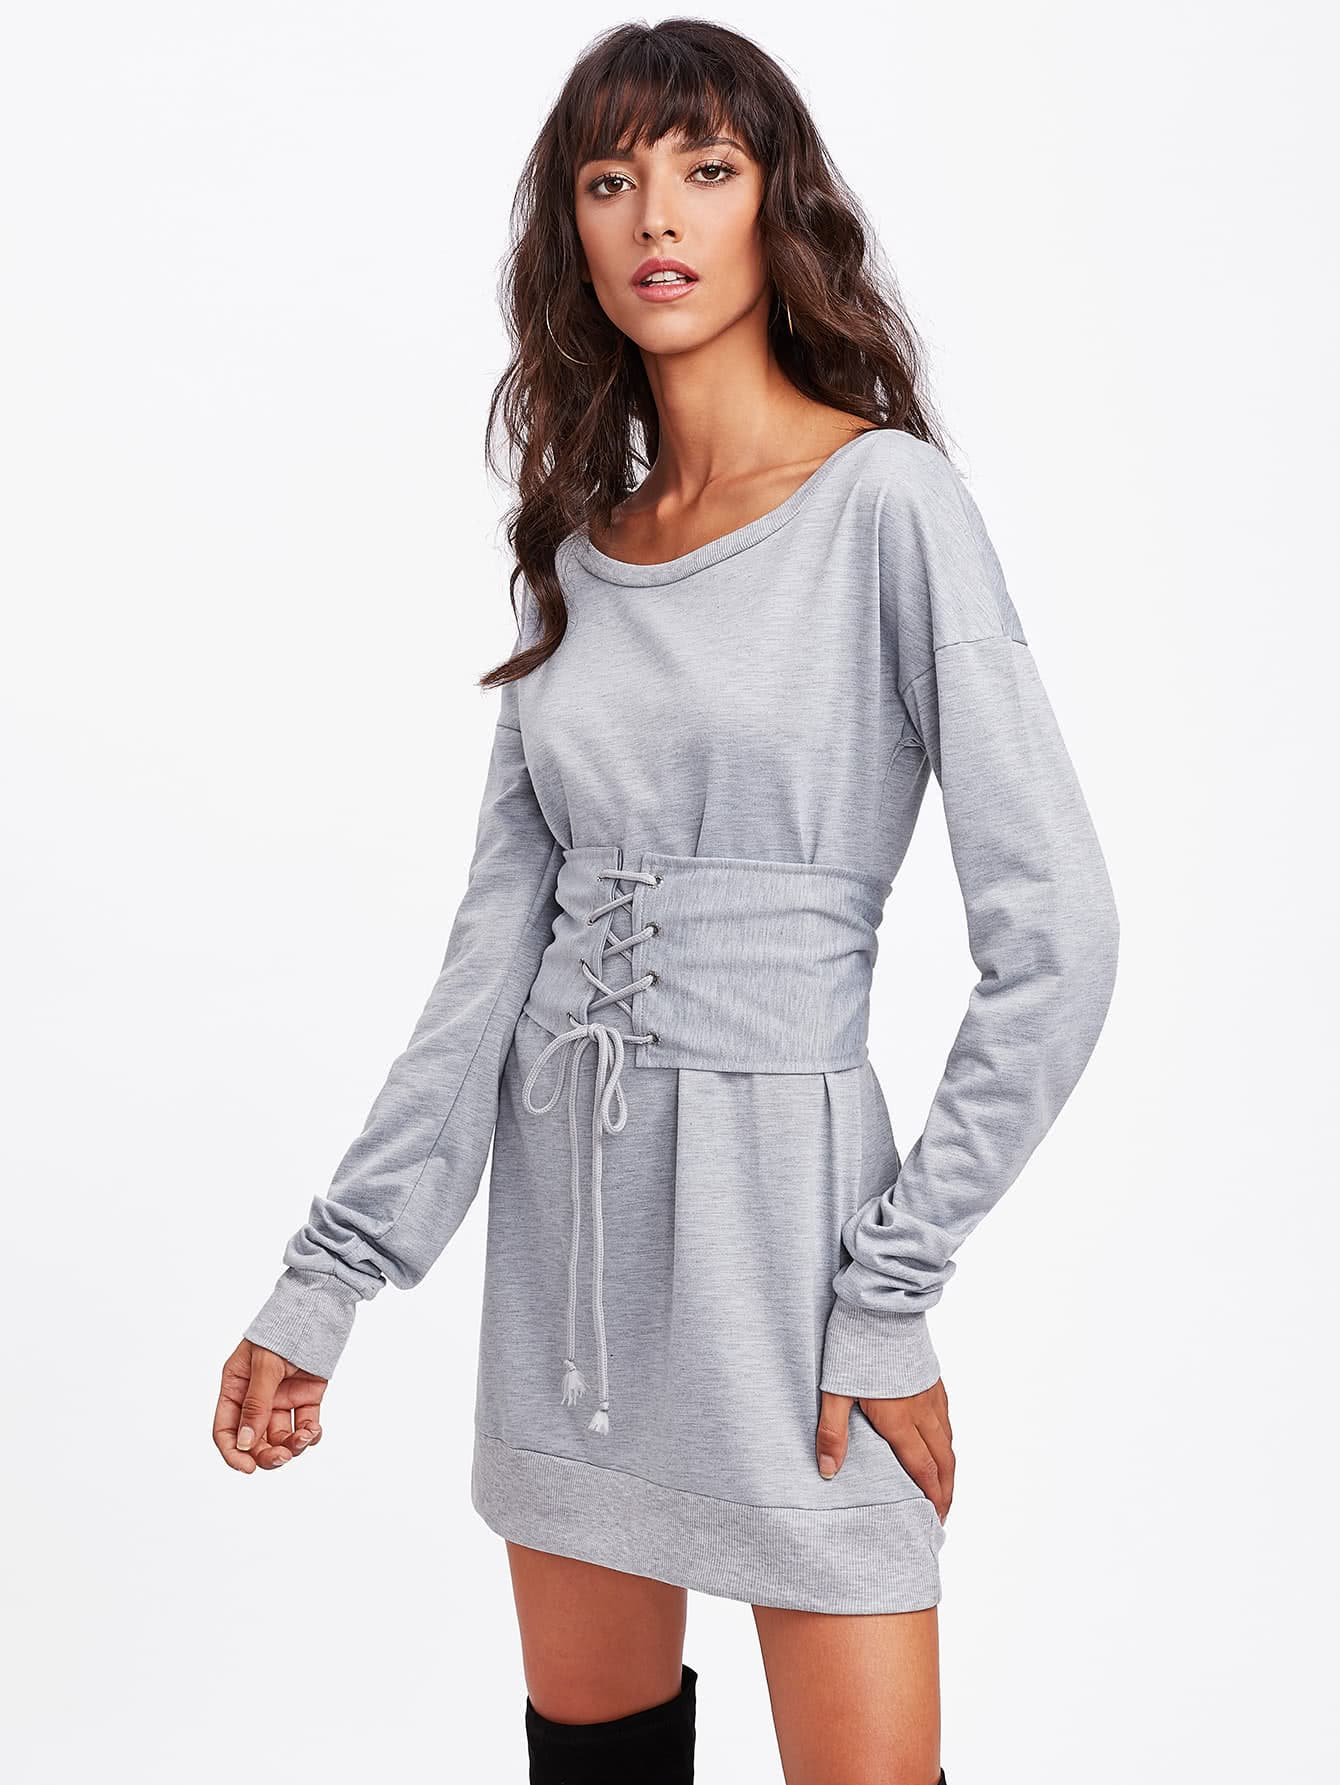 Drop Shoulder Marled Sweatshirt Dress With Corset Belt eyes print drop shoulder marled sweatshirt